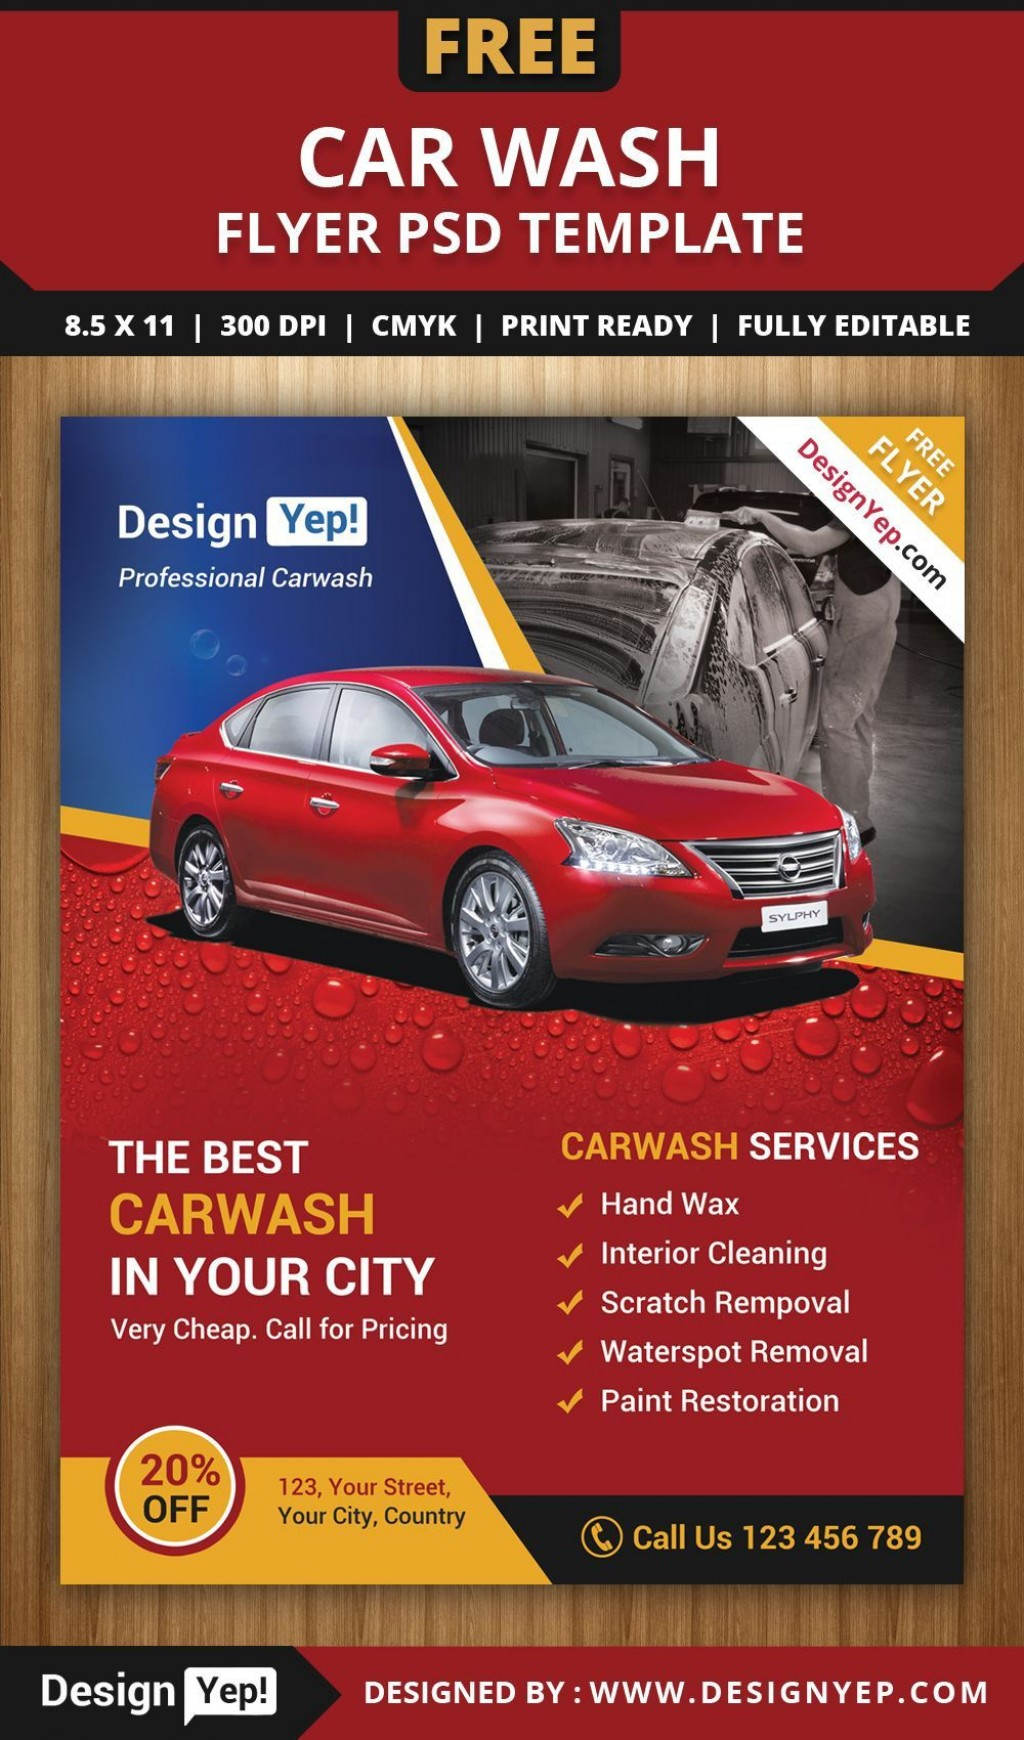 001 Imposing Car Wash Flyer Template Picture  Free Fundraiser DownloadLarge